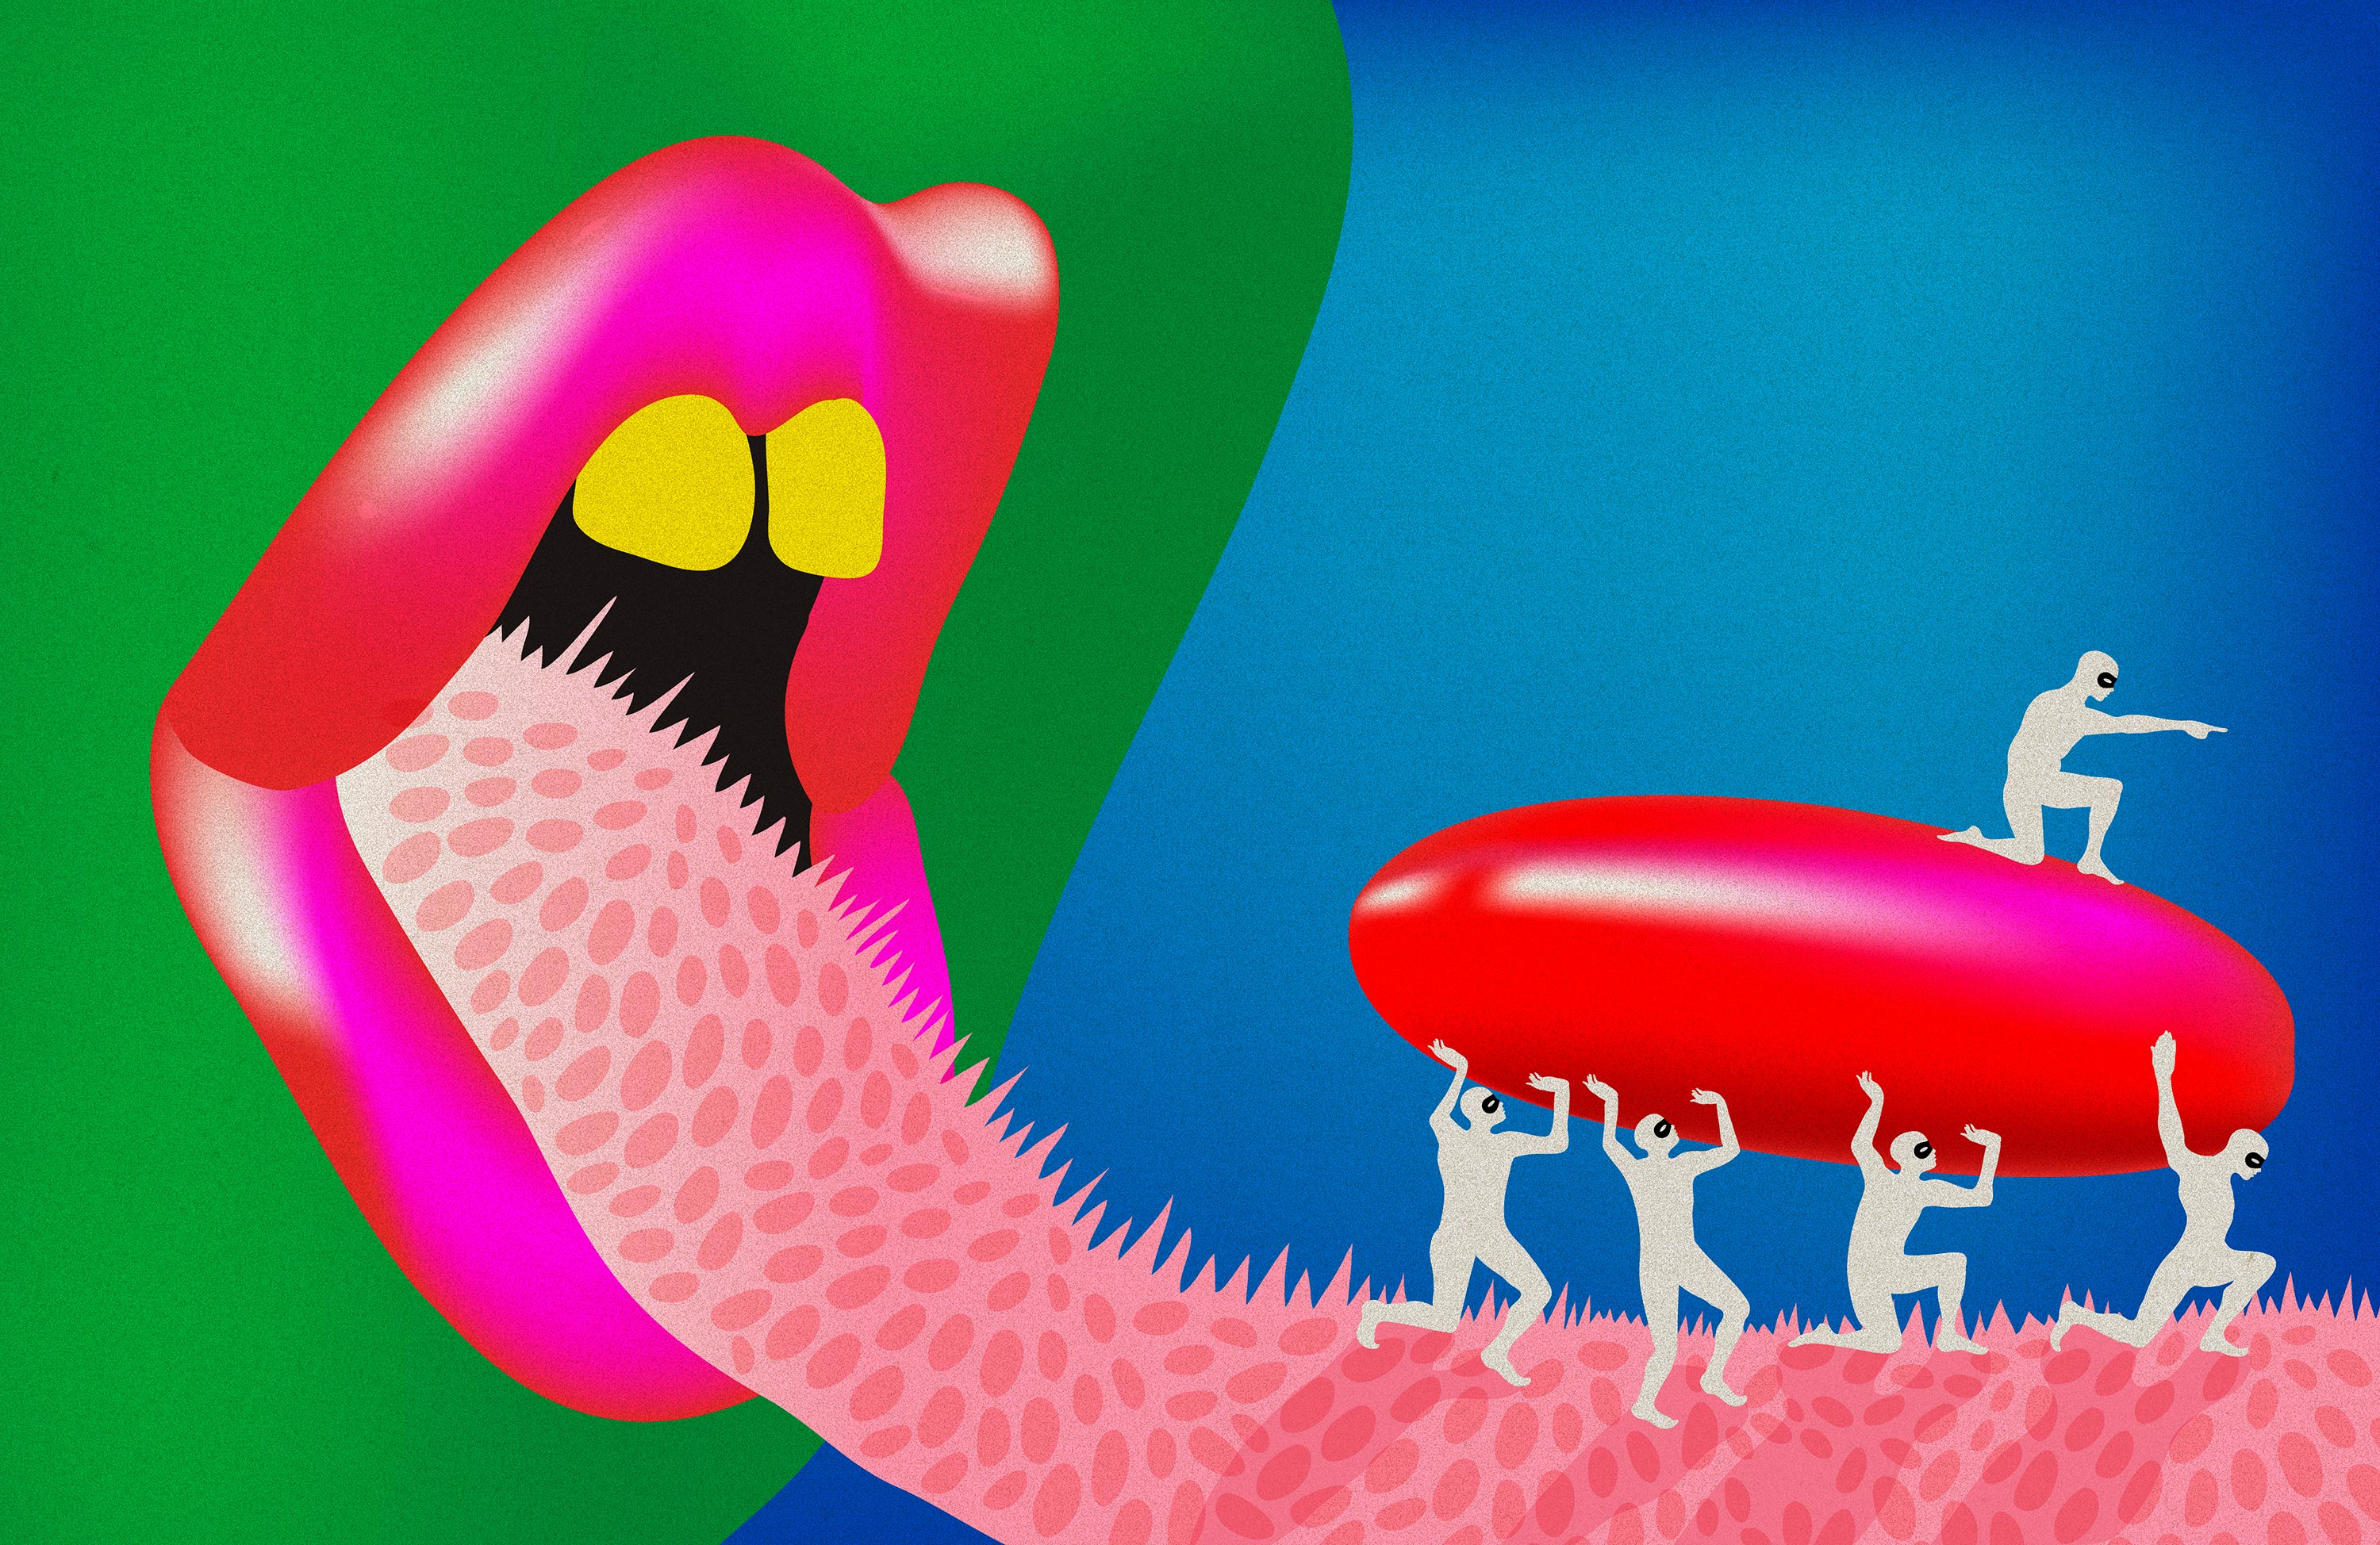 illustration of a colorful open mouth sticking out a long spiky tongue as a group of white figures carry a large red pill.